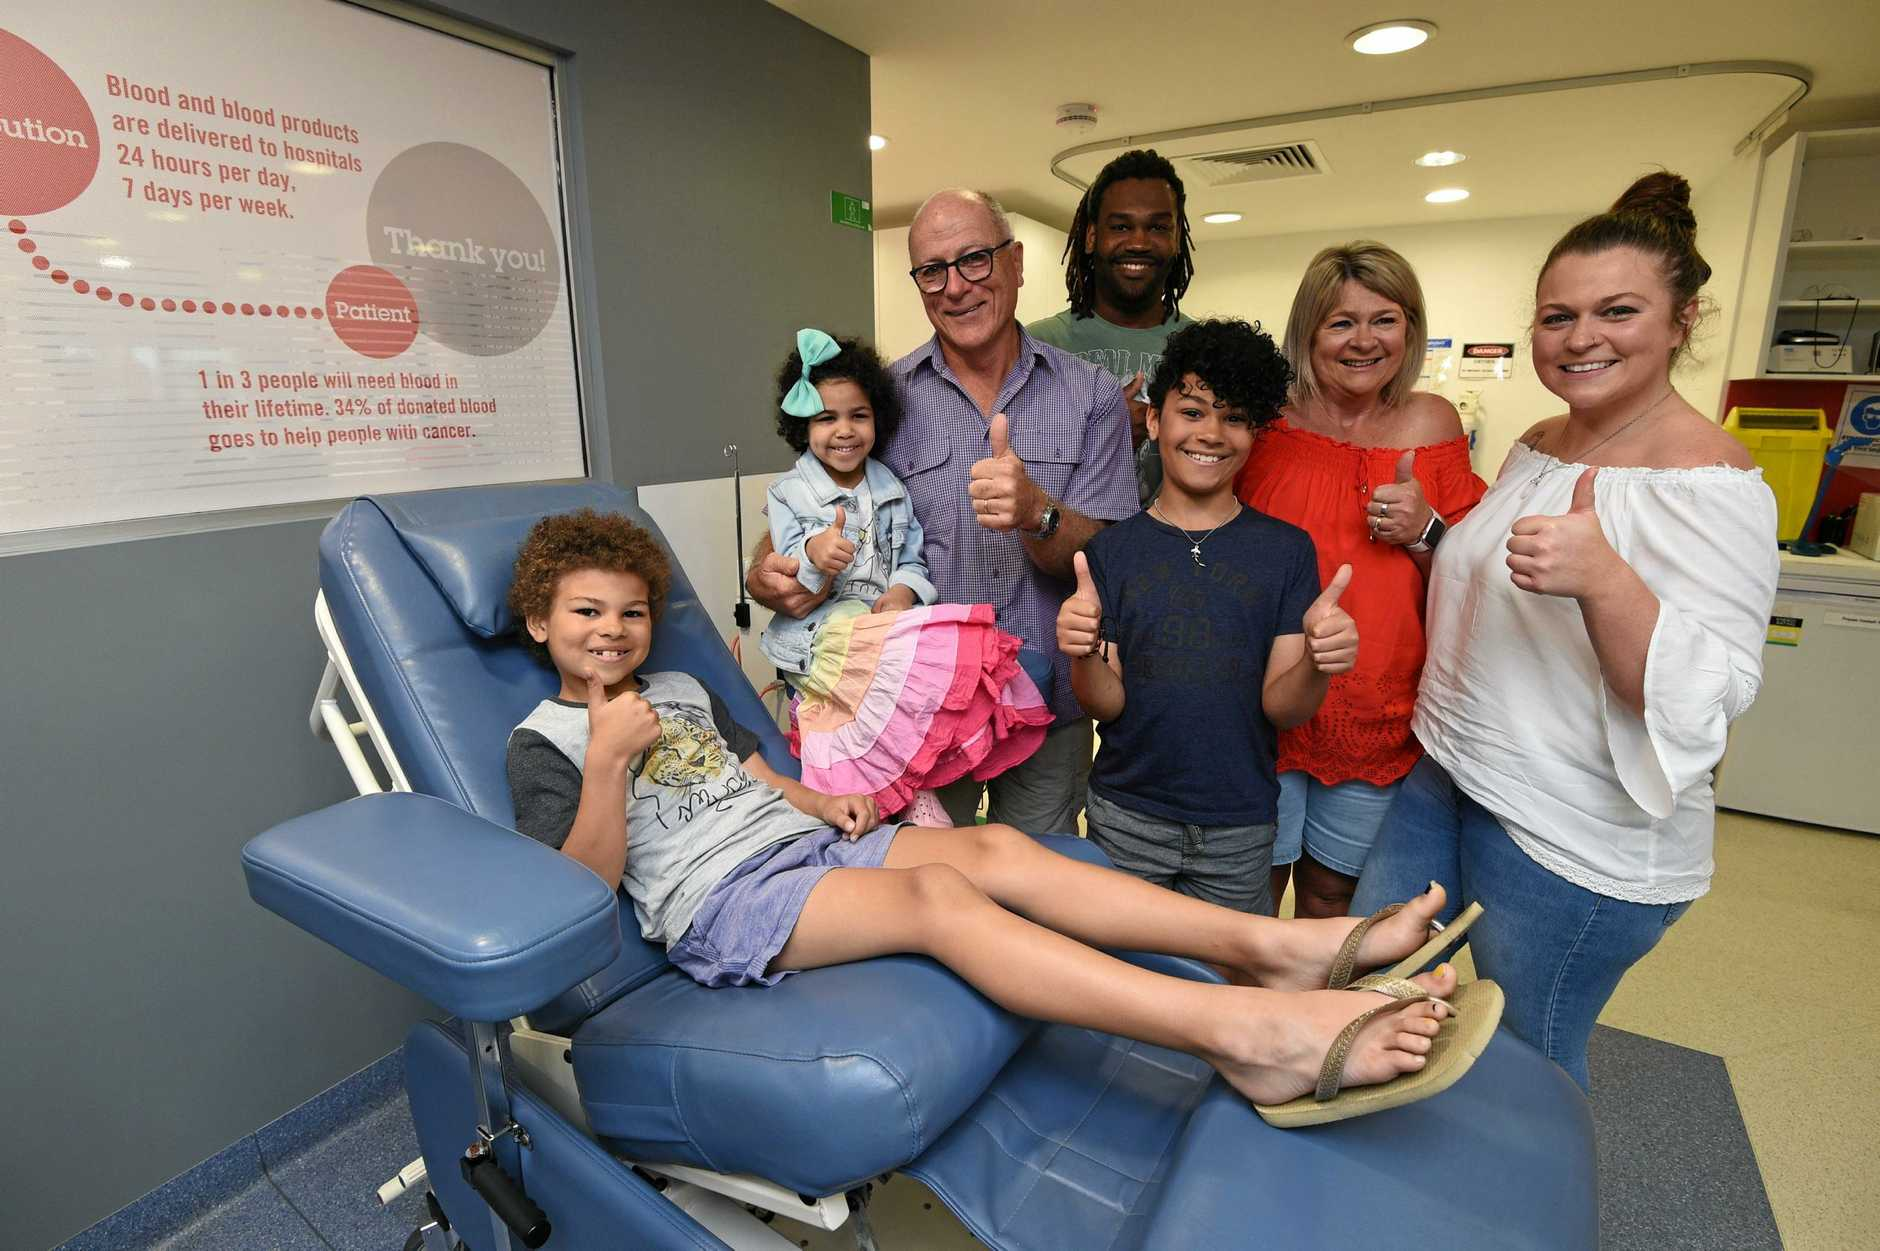 4 yr old Ivy Exantus with her grandfather Graeme Davies at the Hervey Bay Donor Centre - pictured with his wife Sharon and daughter Kimberley Exantus, her husband James and children Isaiah,10, and Jaye,7.